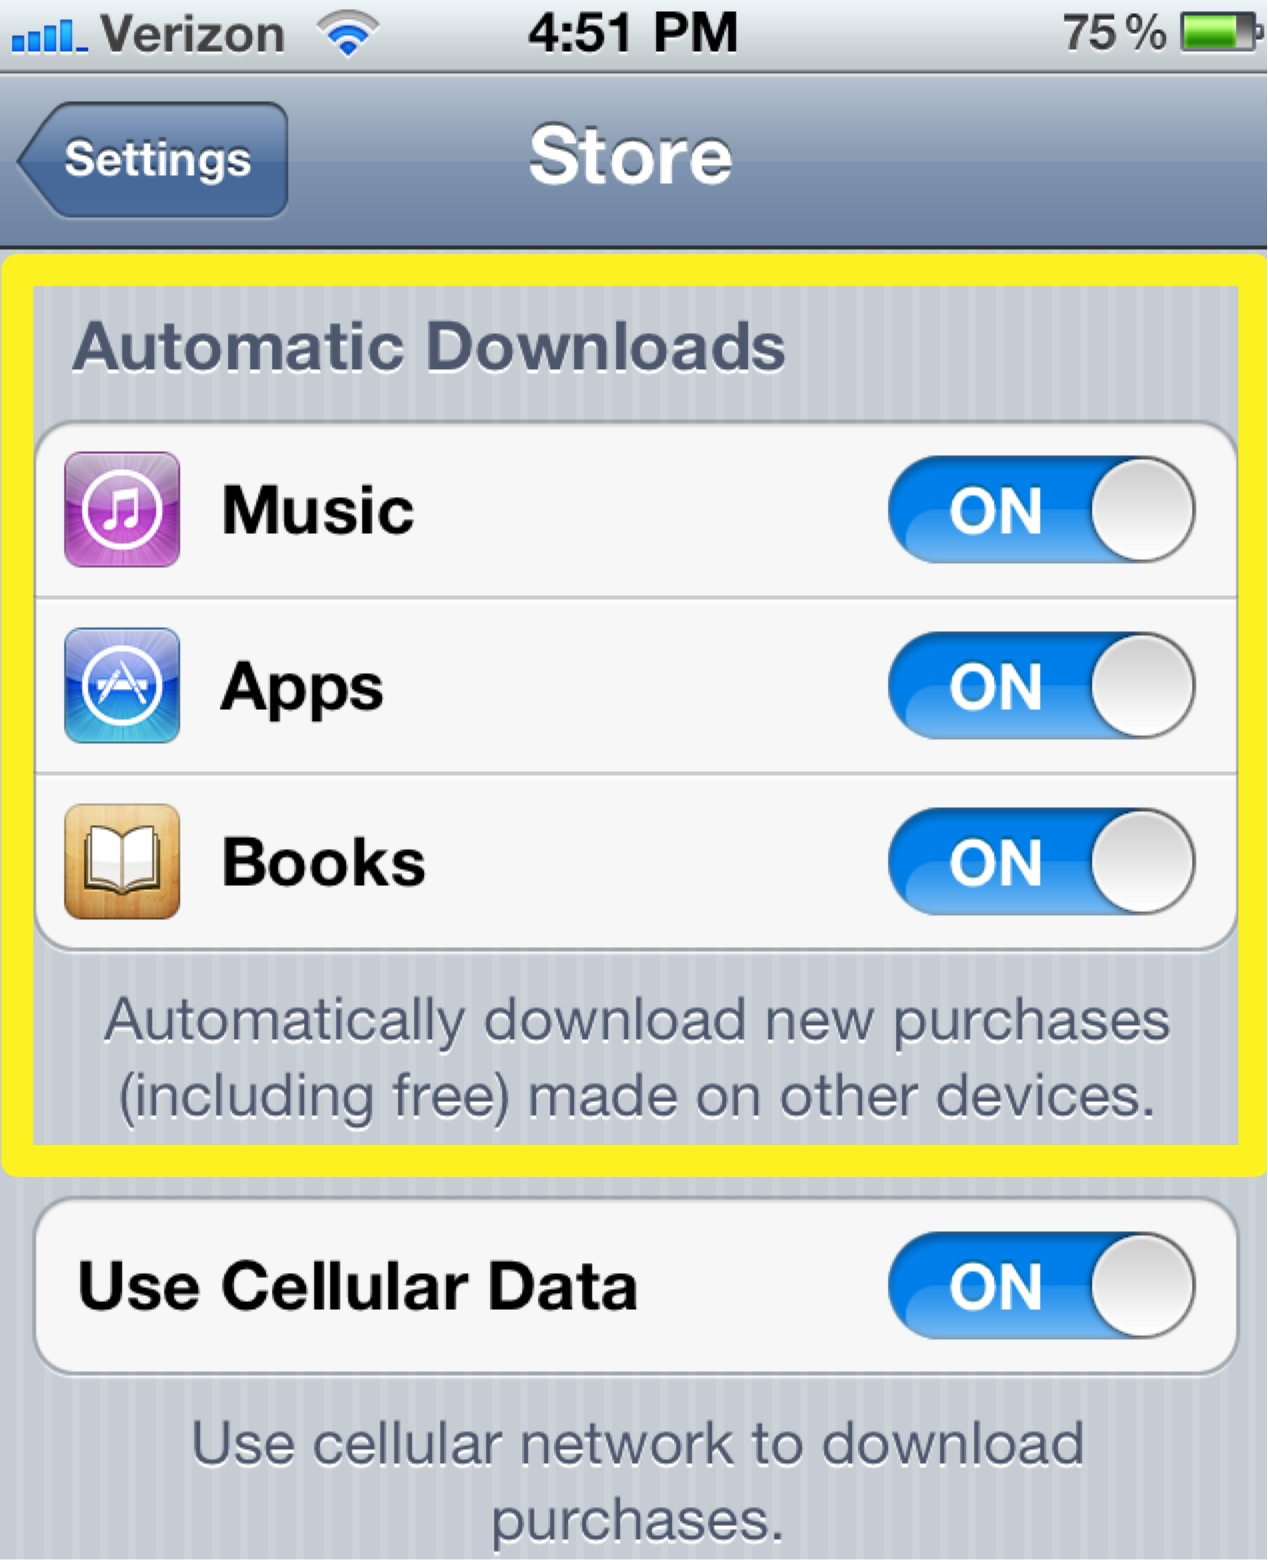 How to Automatically Download Apps to iPhone and iPad